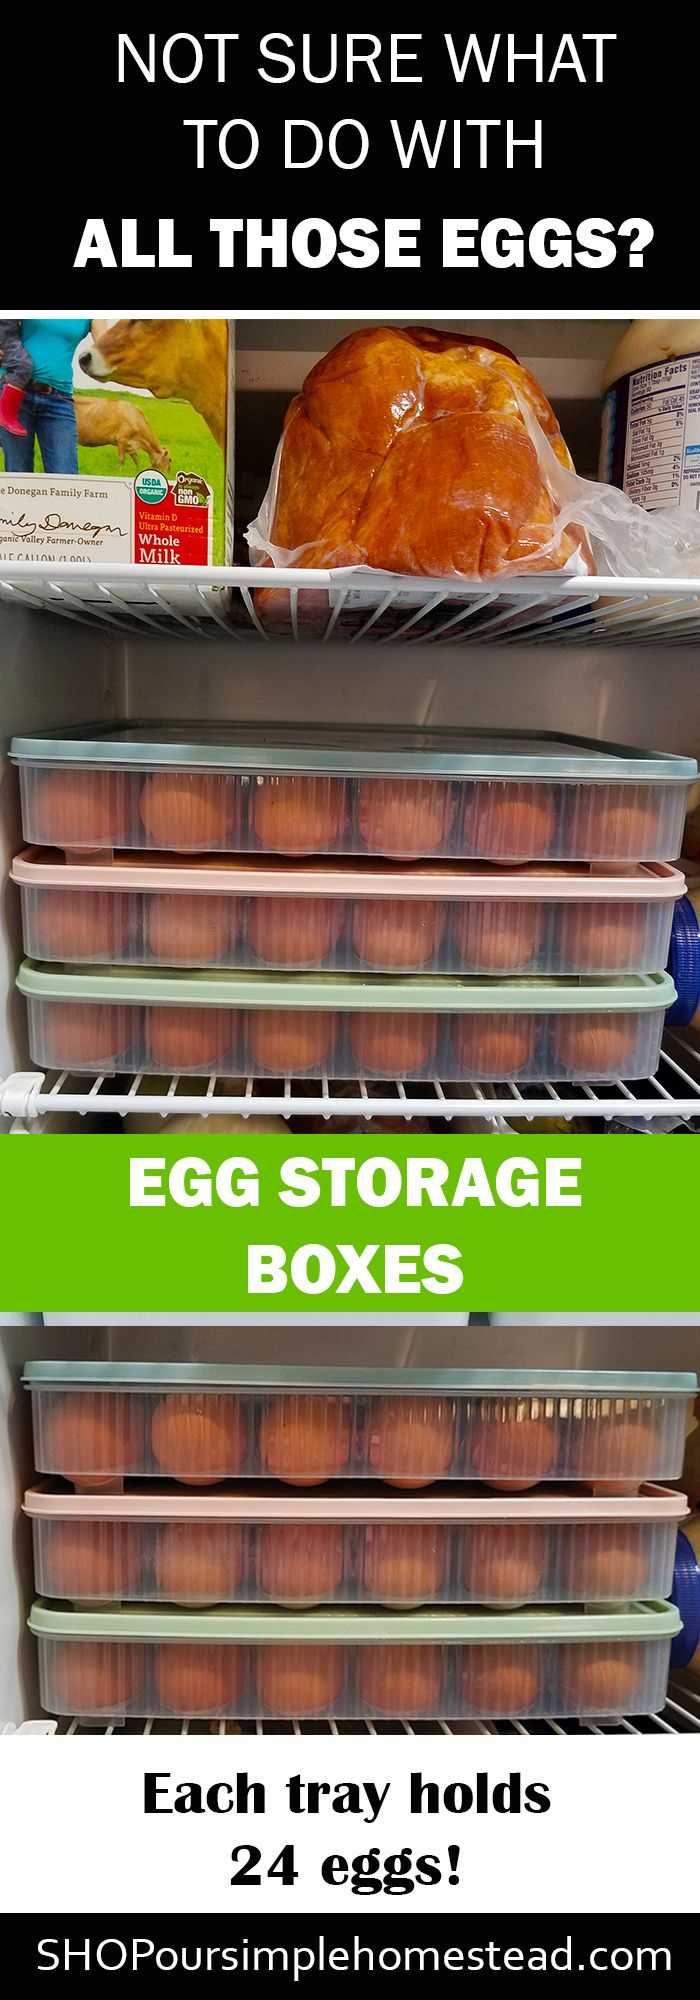 Egg Storage Boxes - No more eggs spilling out everywhere! These handy egg storage boxes hold 24 eggs each and keep all your prized eggs neatly tucked in your fridge or on your counter.  Don't wait until you have more eggs then you know what to do with.  Grab a few boxes before your hens start laying.